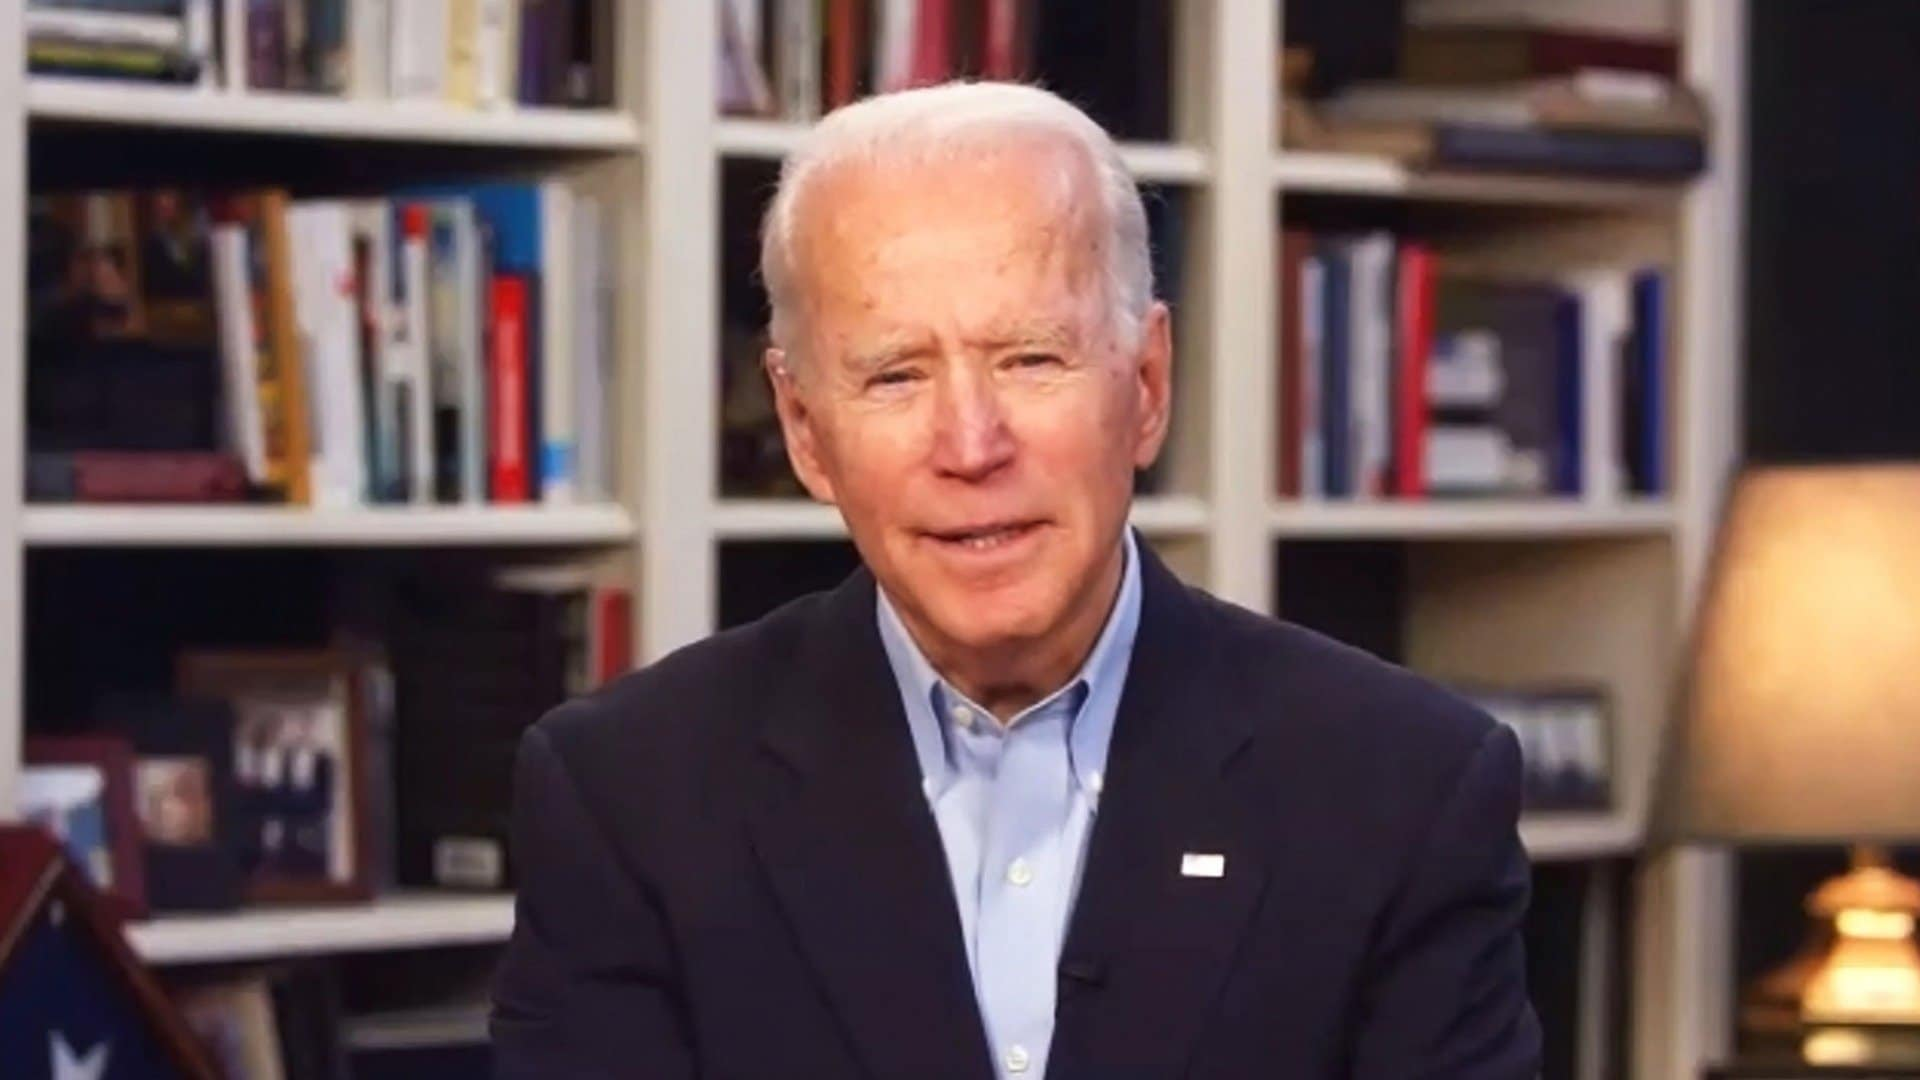 At Home Edition: Joe Biden; Andy Puddicombe; Marcus Mumford